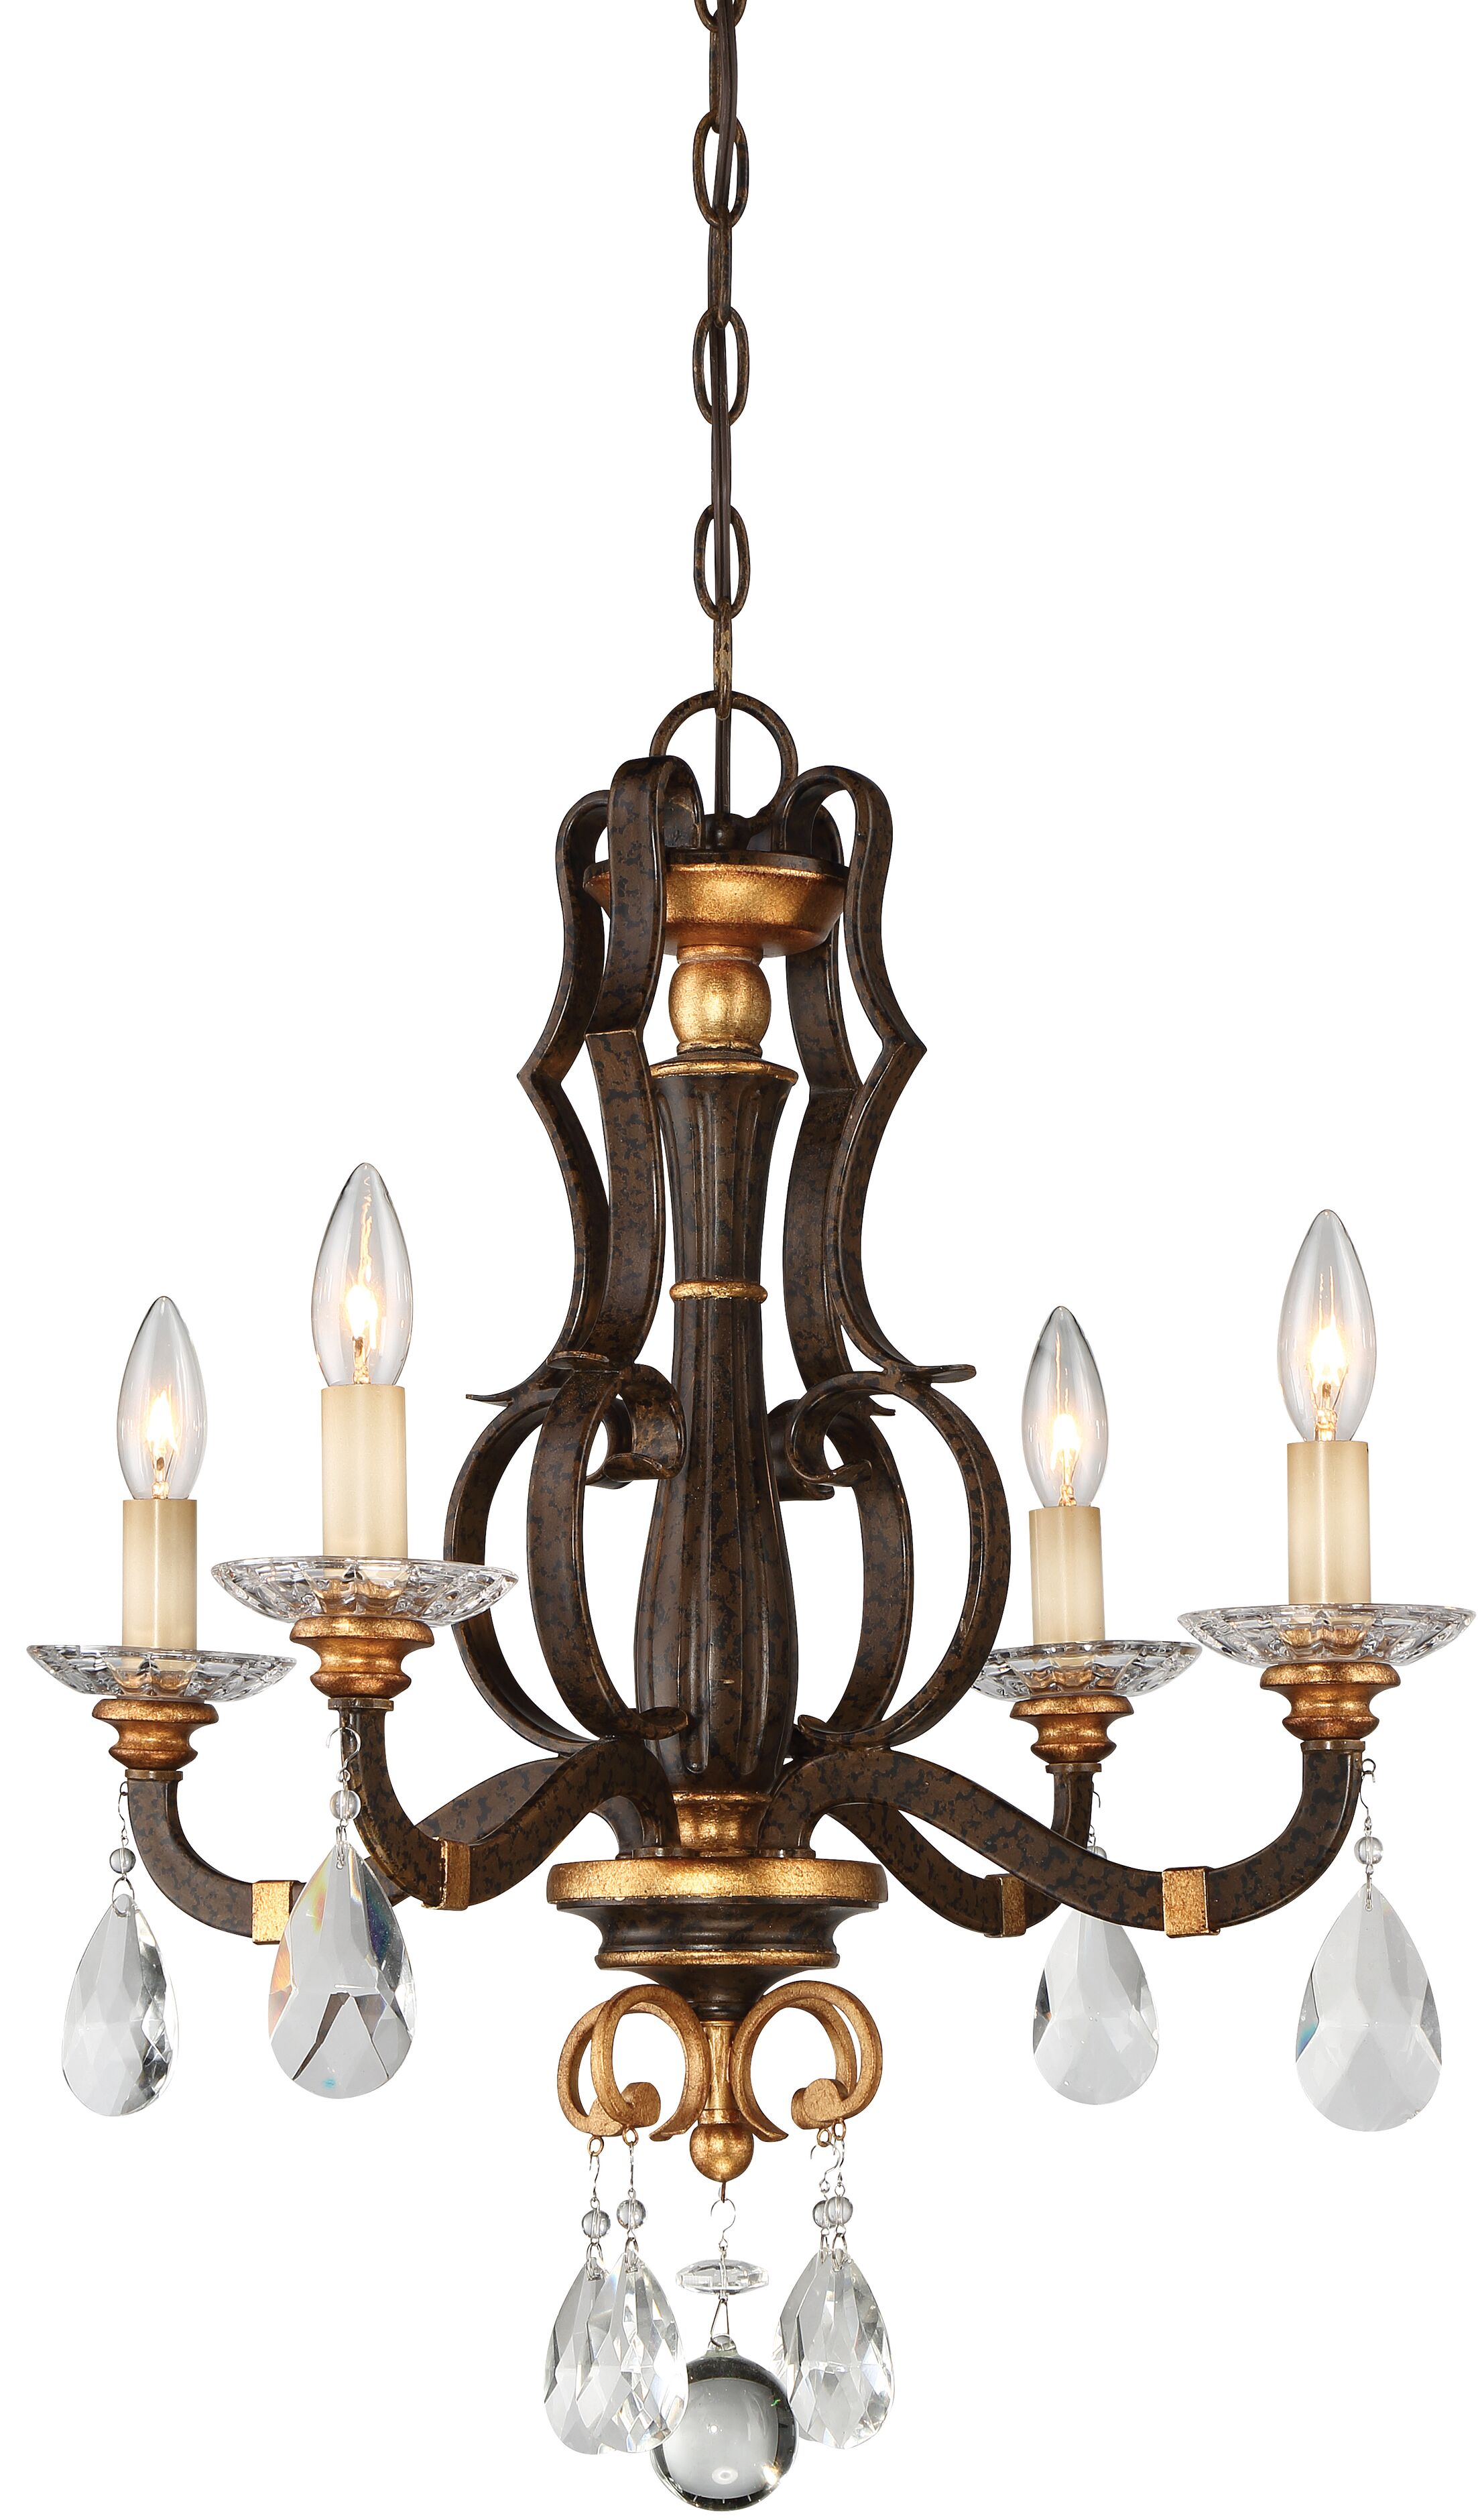 Chateau Nobles 4-Light Candle Style Chandelier